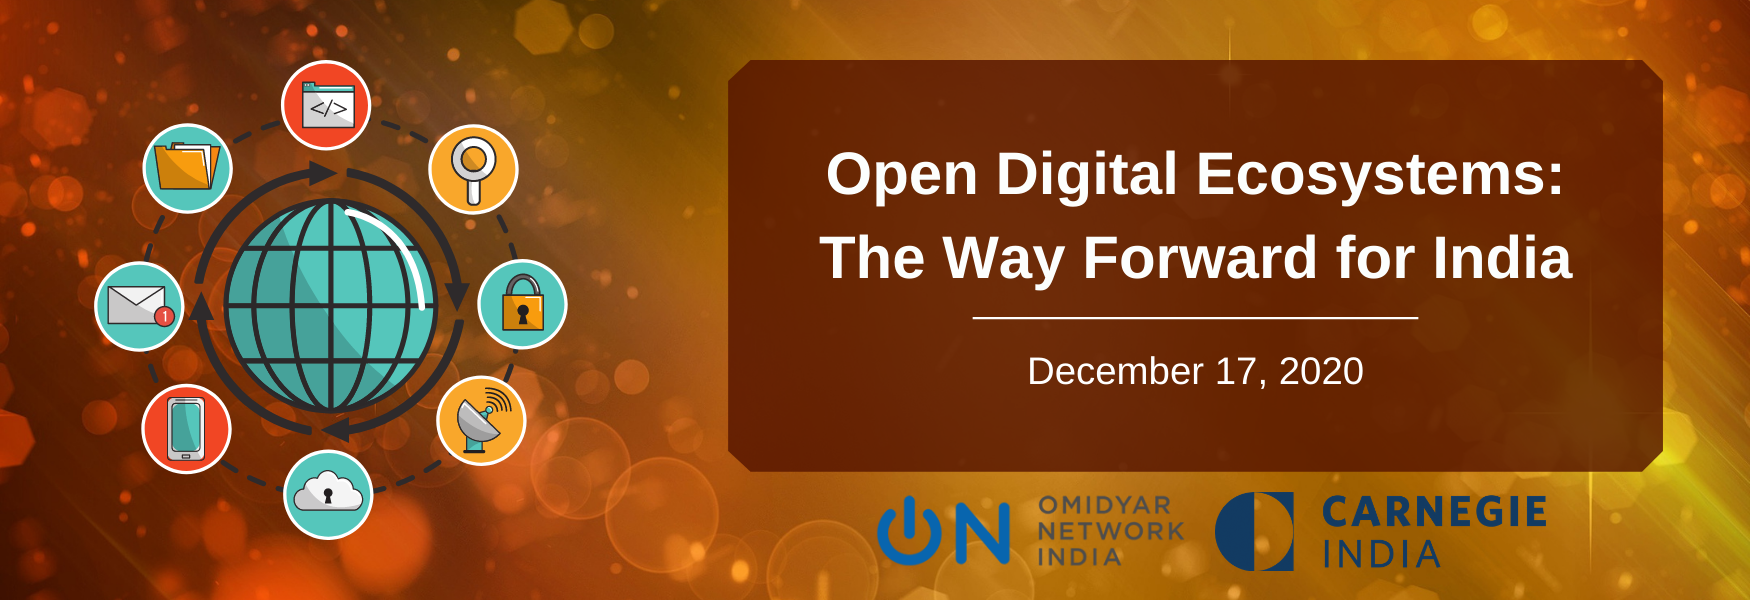 Open Digital Ecosystems: The Way Forward for India